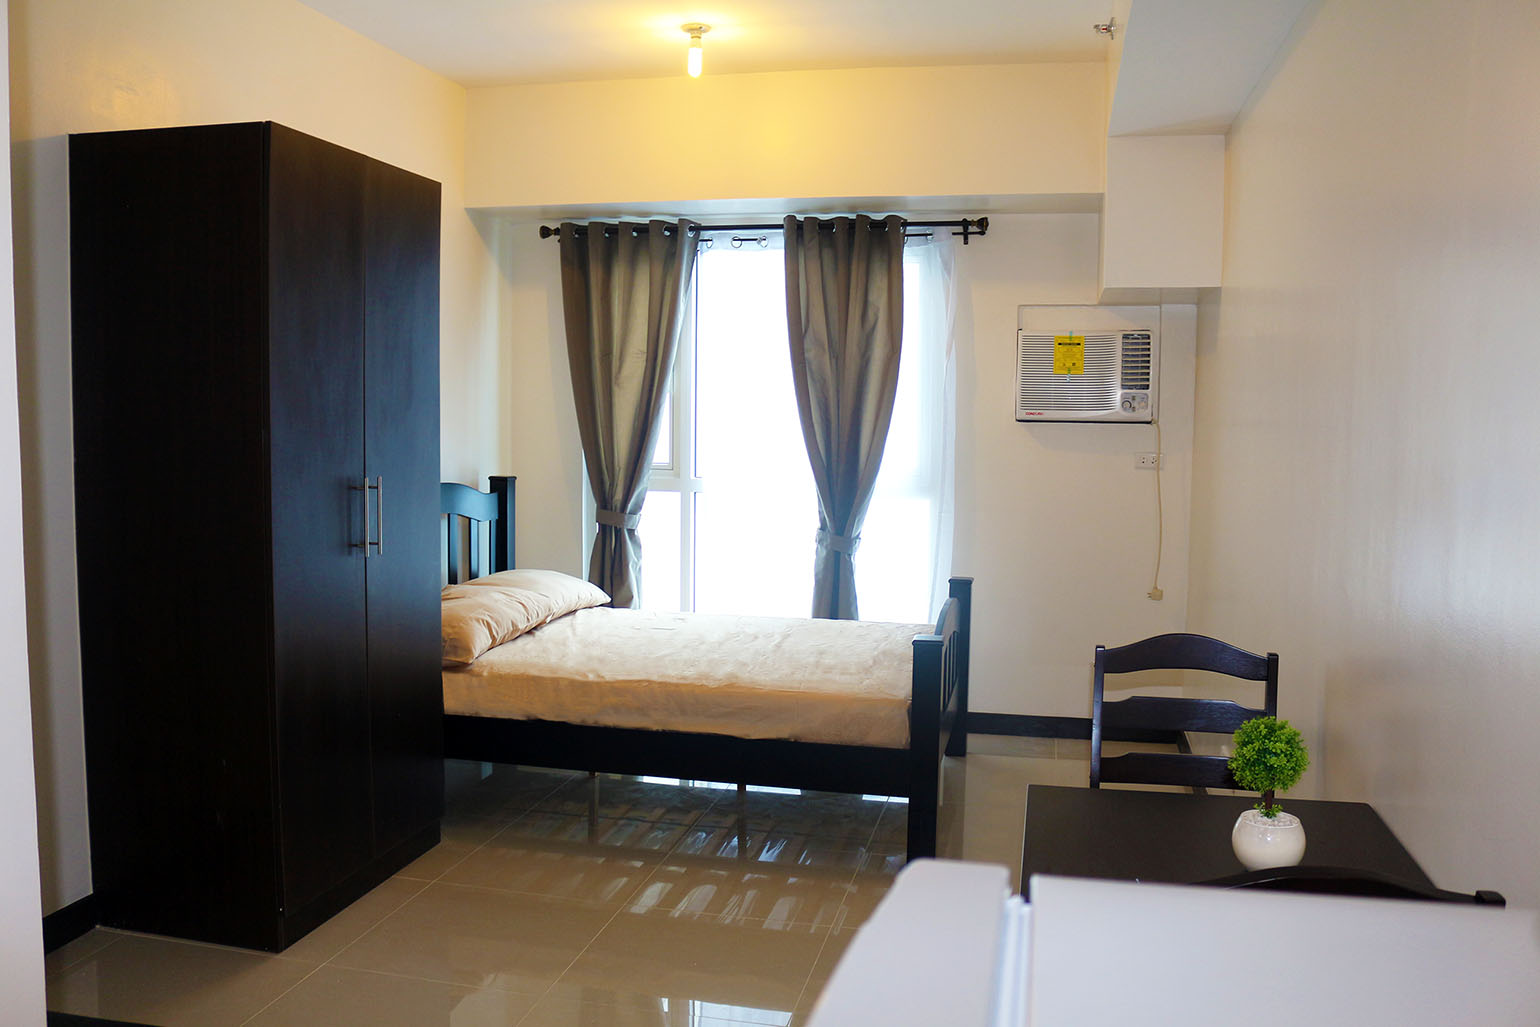 design living room virtual best of modern small ideas affordable studio type for rent in mandaluyong: axis ...